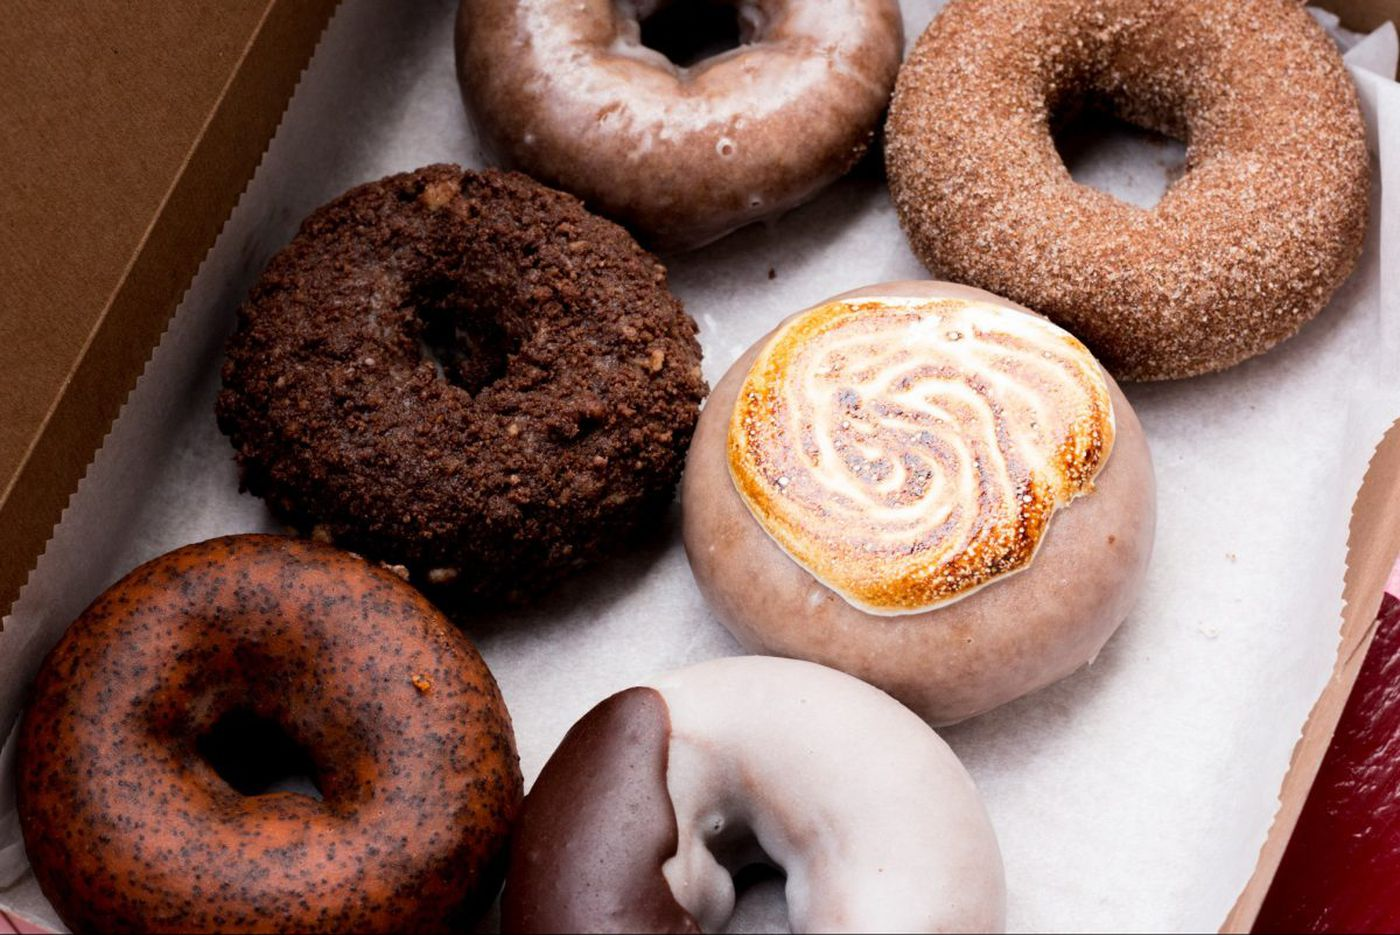 Federal Donuts to open in East Market